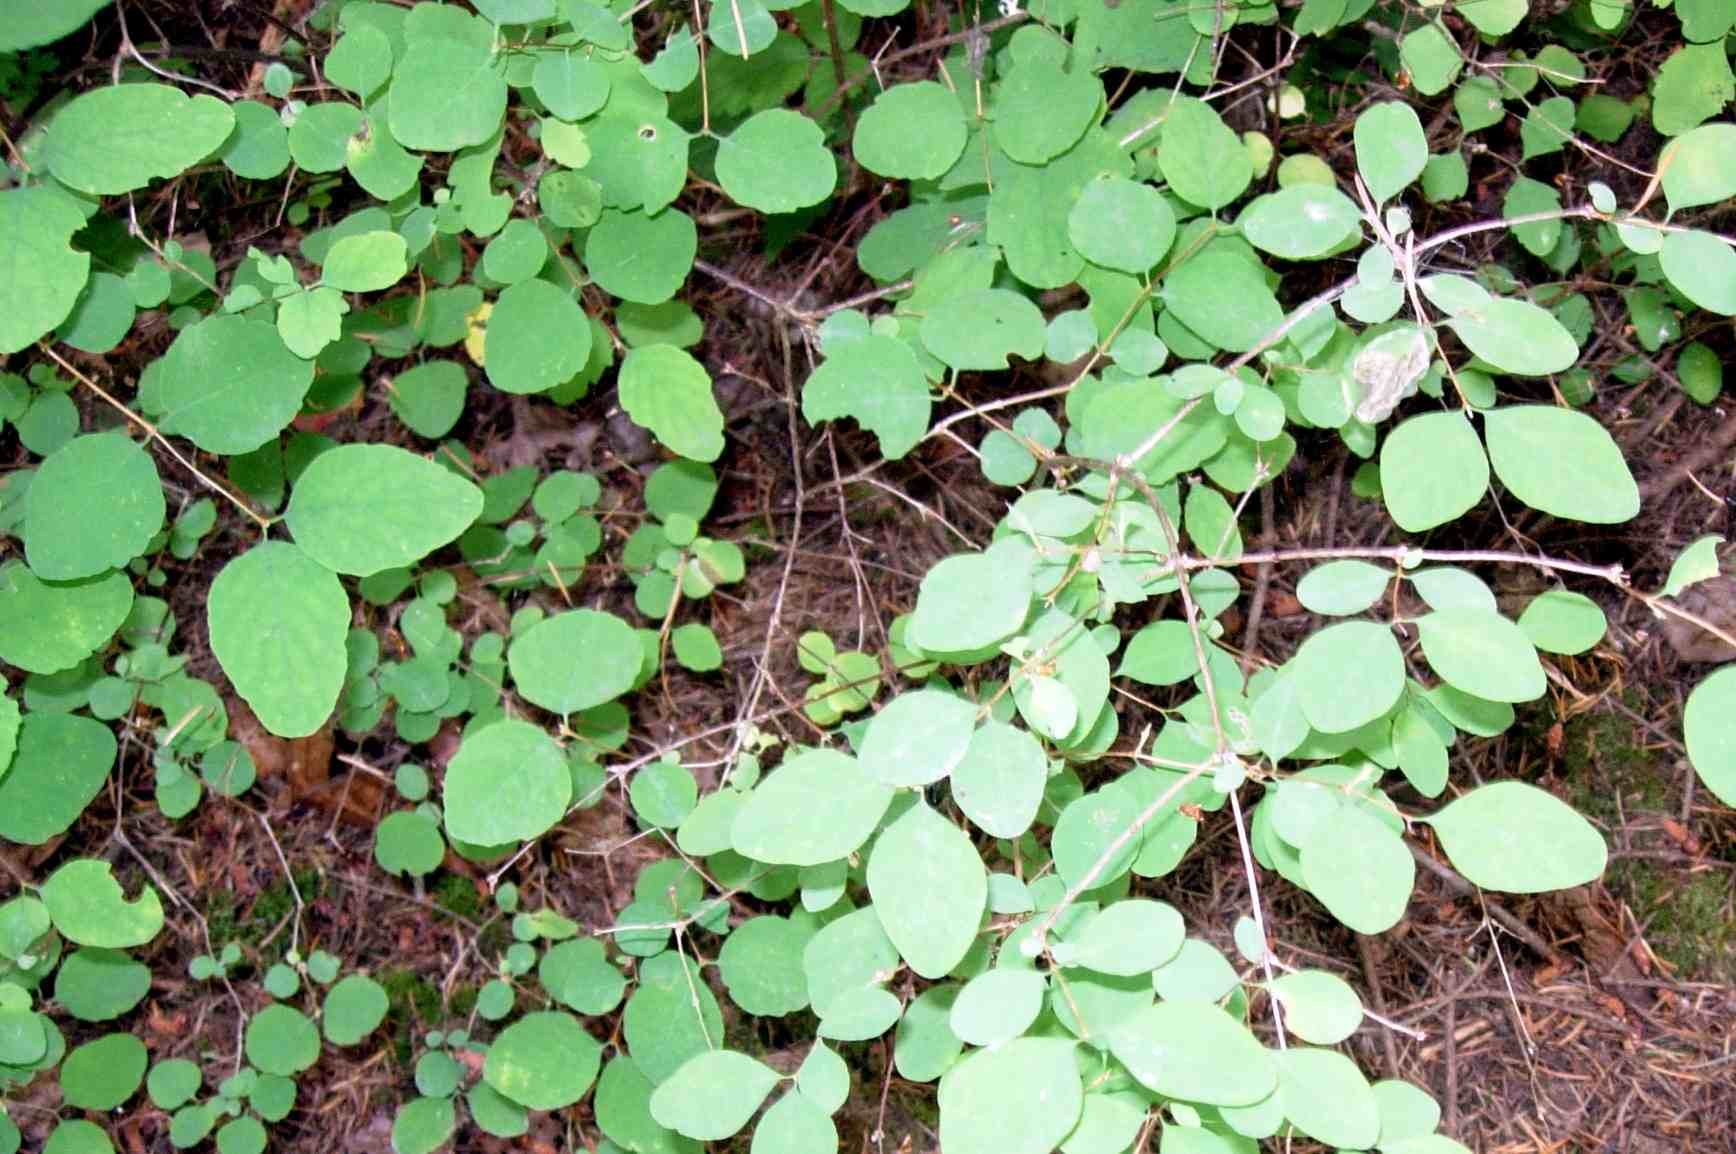 How Do You Know If That Plant Is Poison Oak